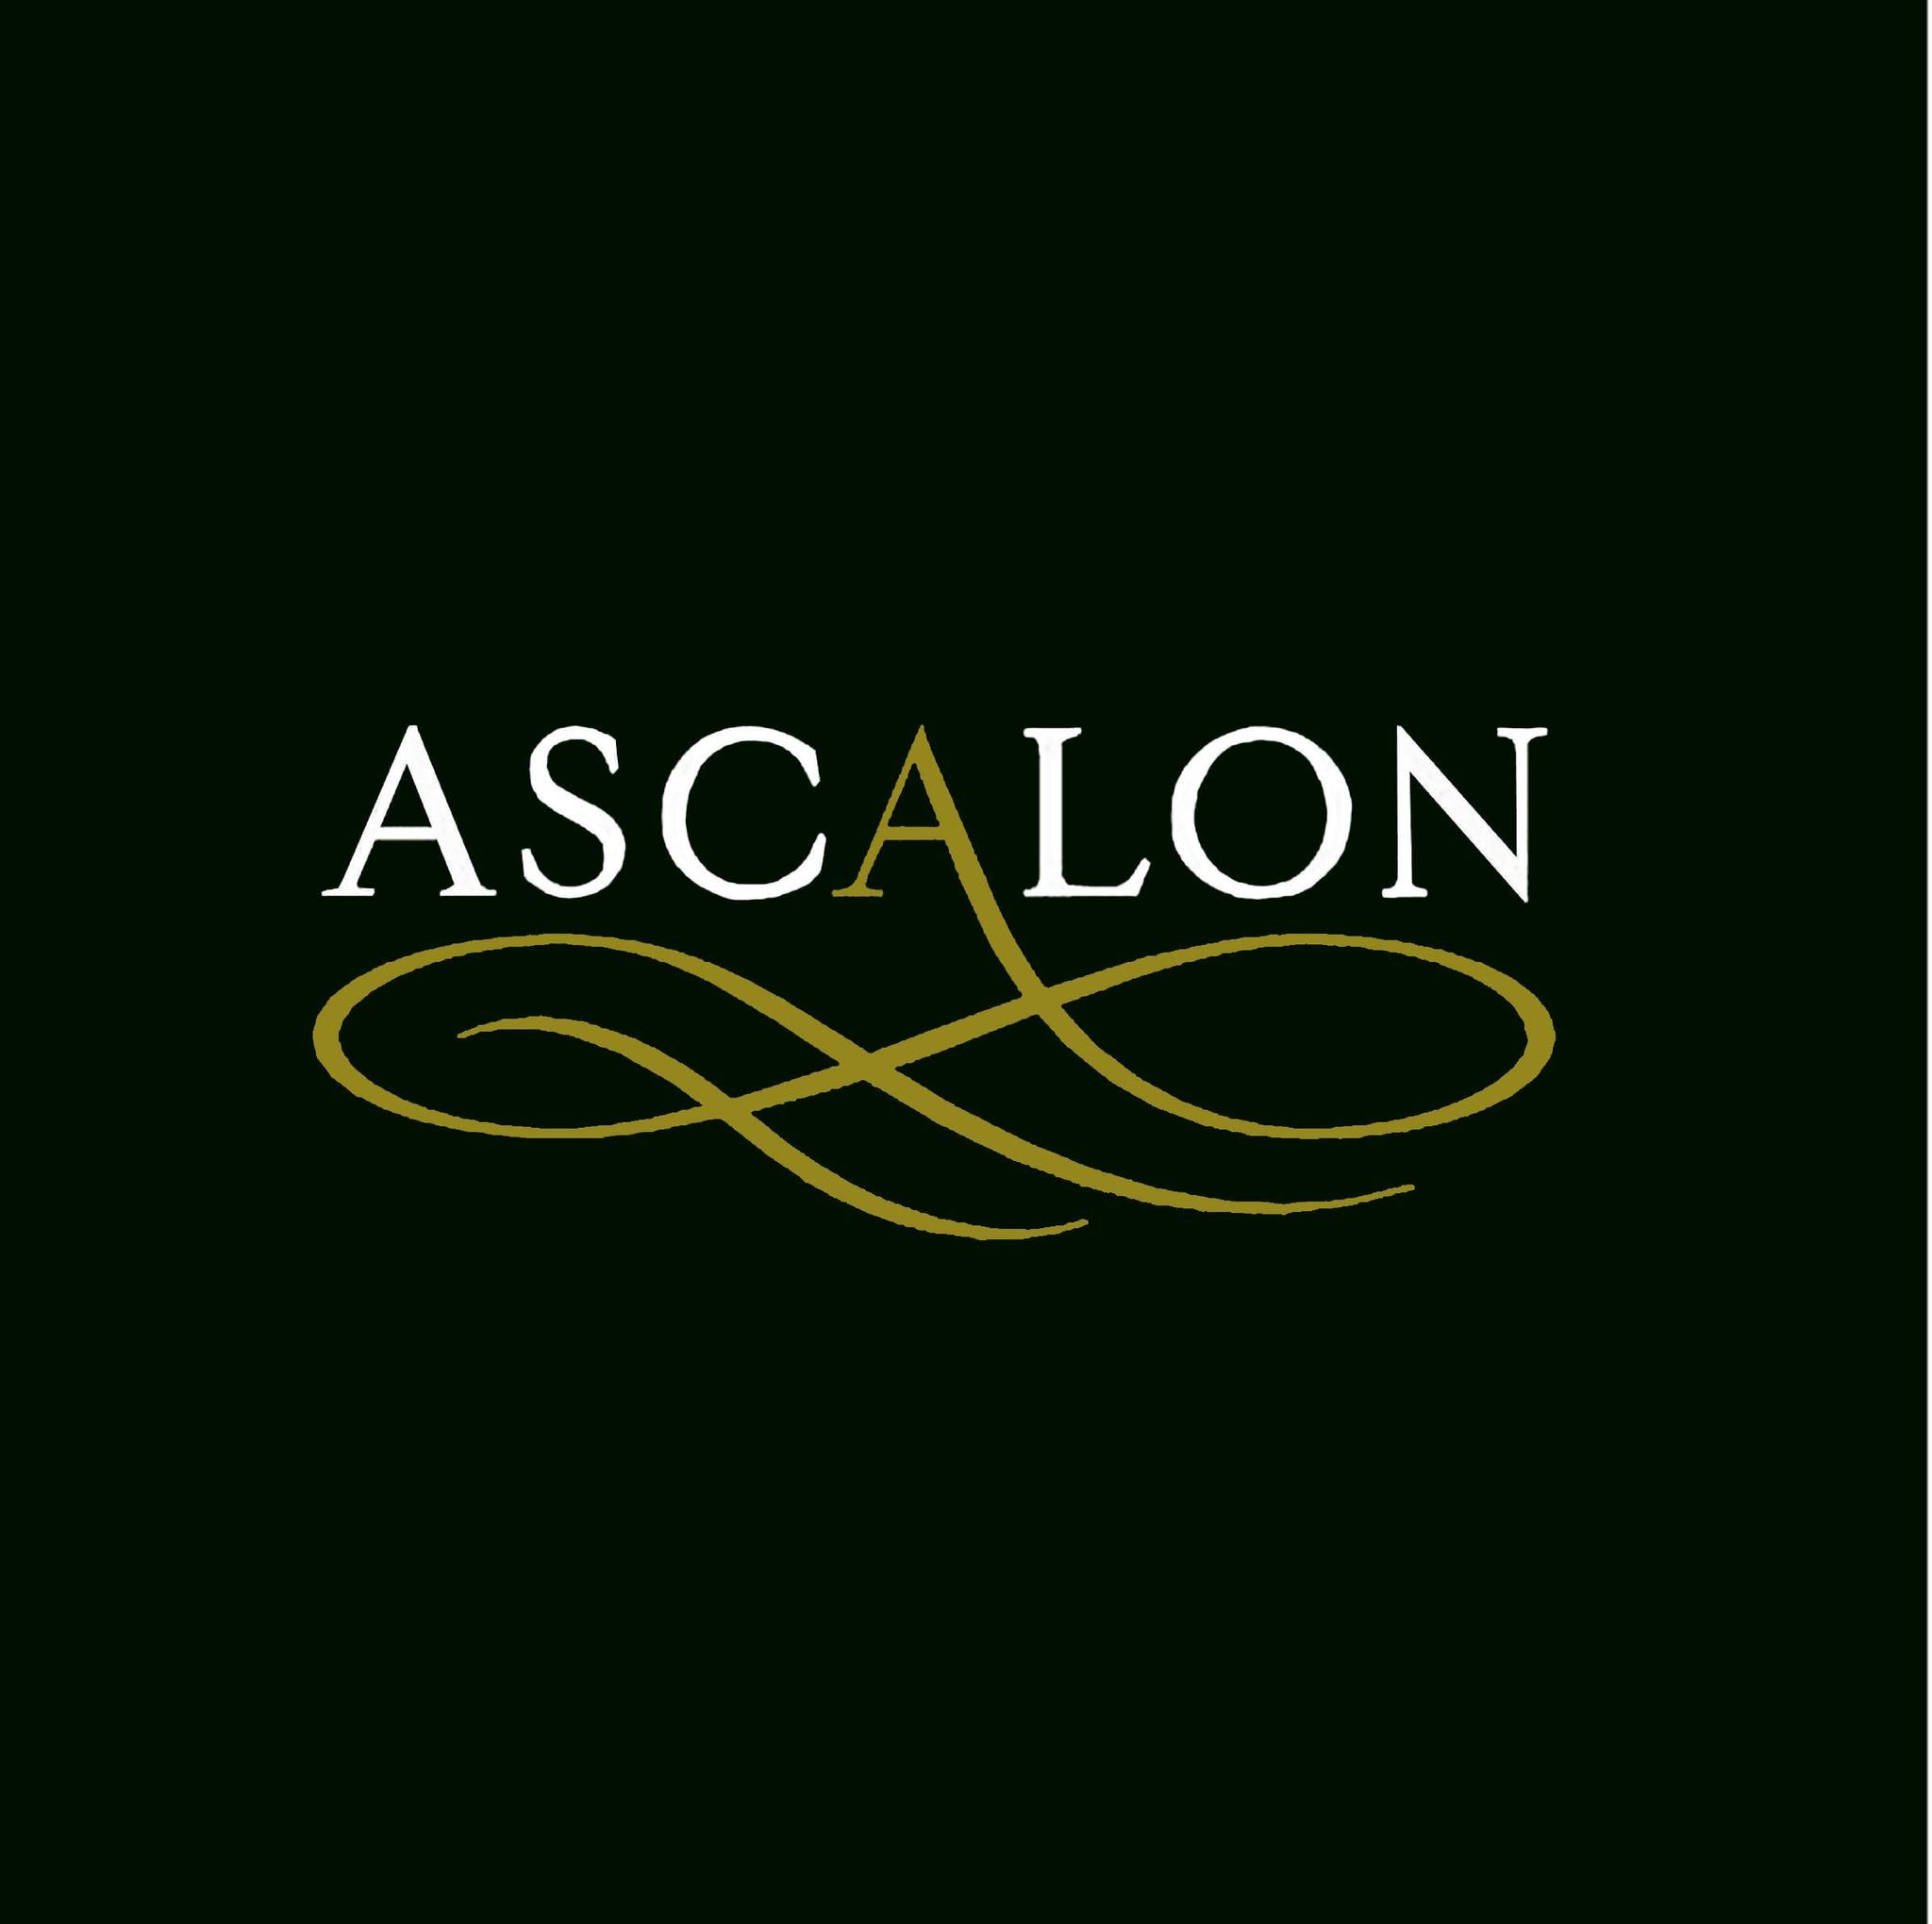 Ascalon Design Ltd